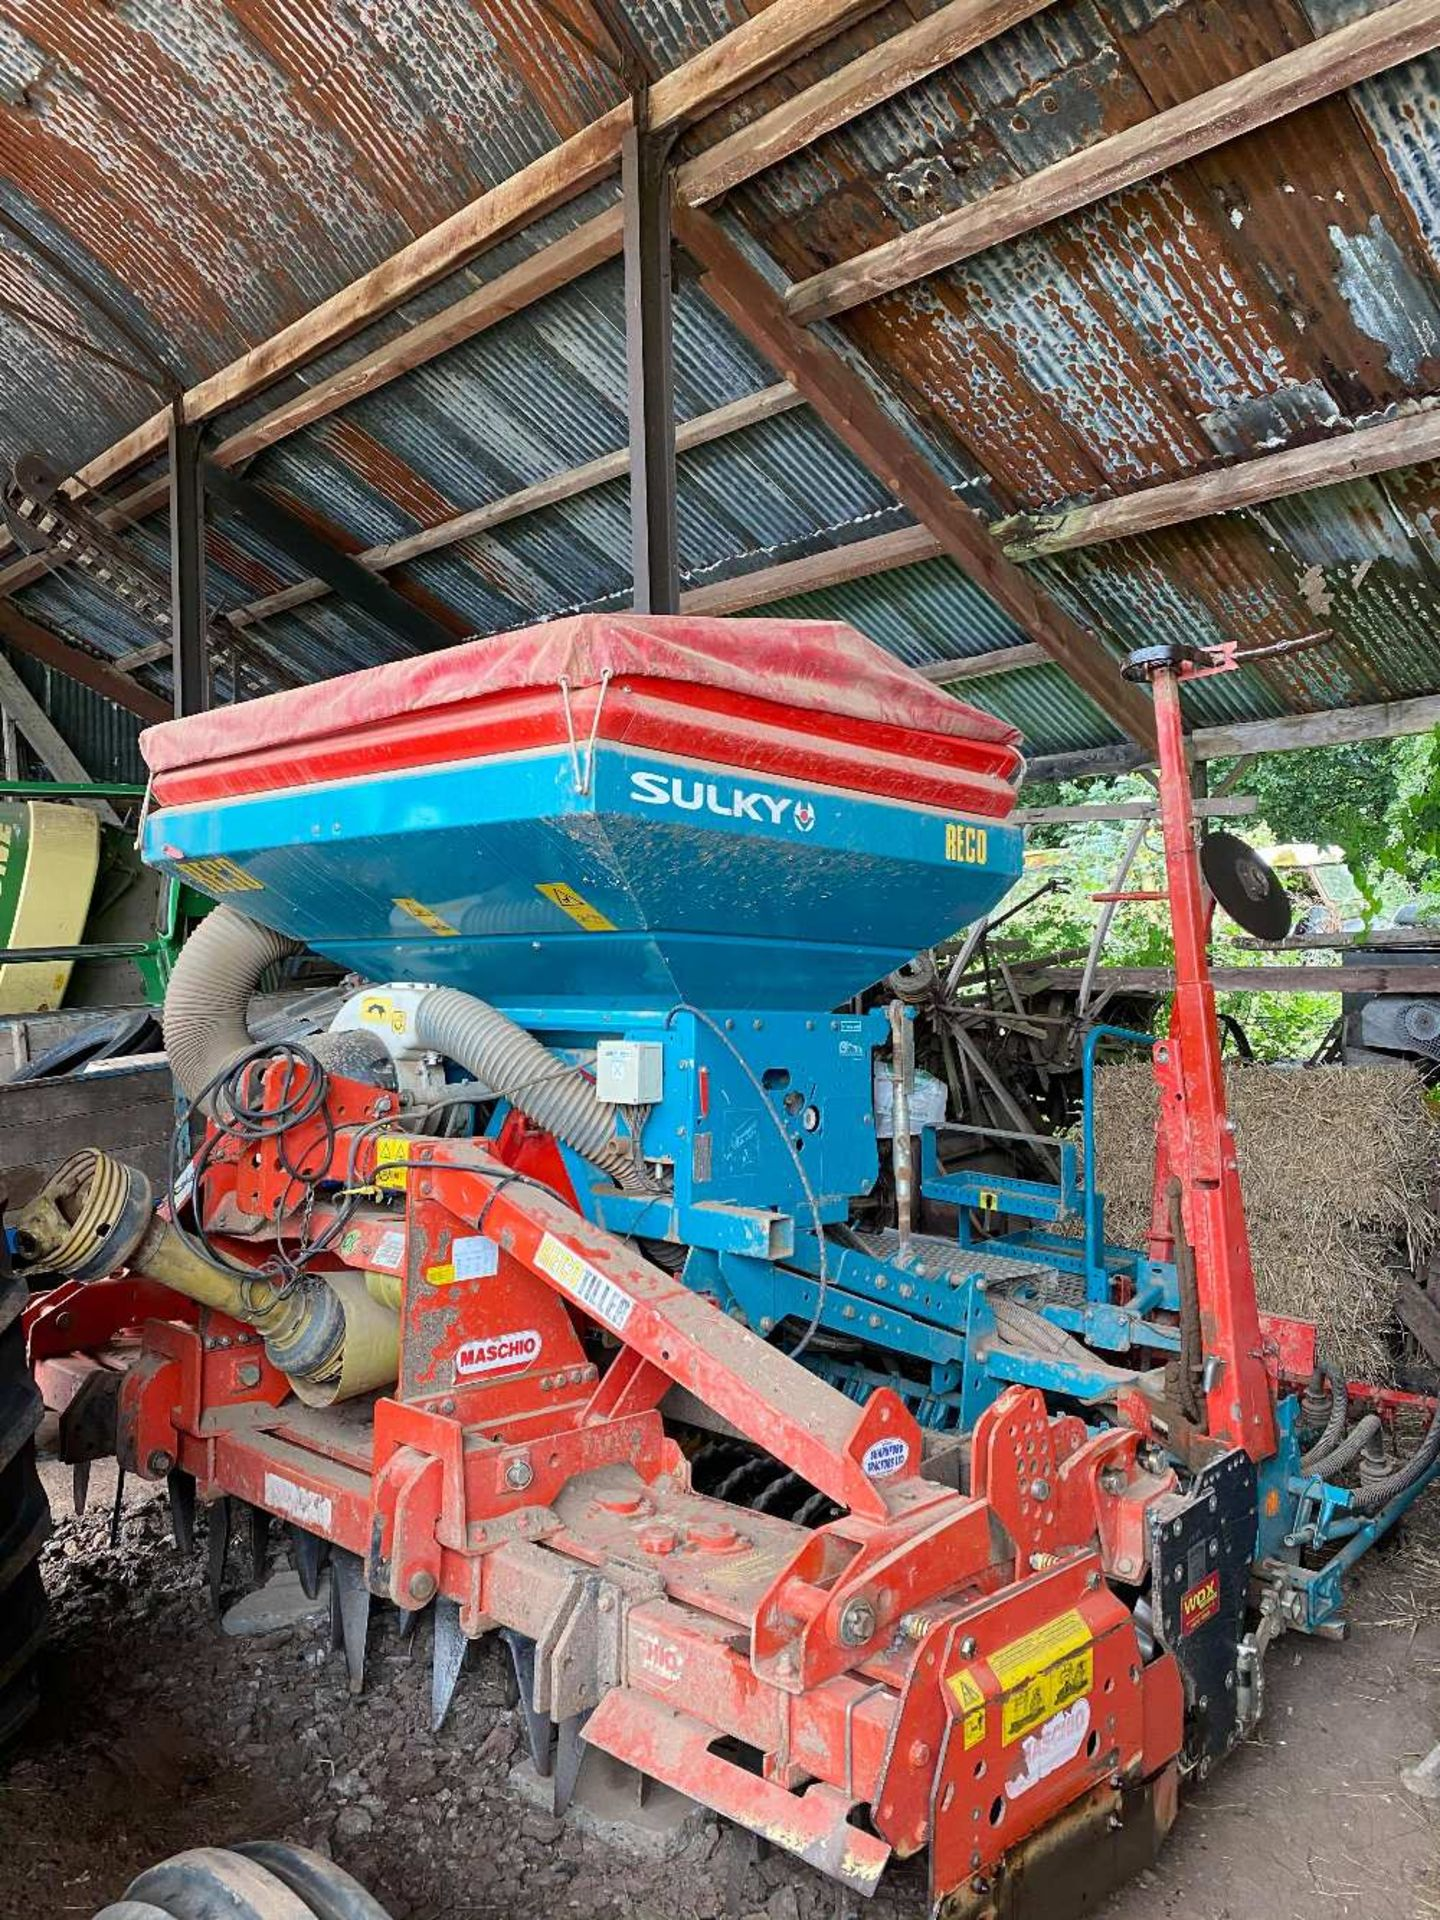 Lot 269 - SULKY 3M AIRDRILL 2007